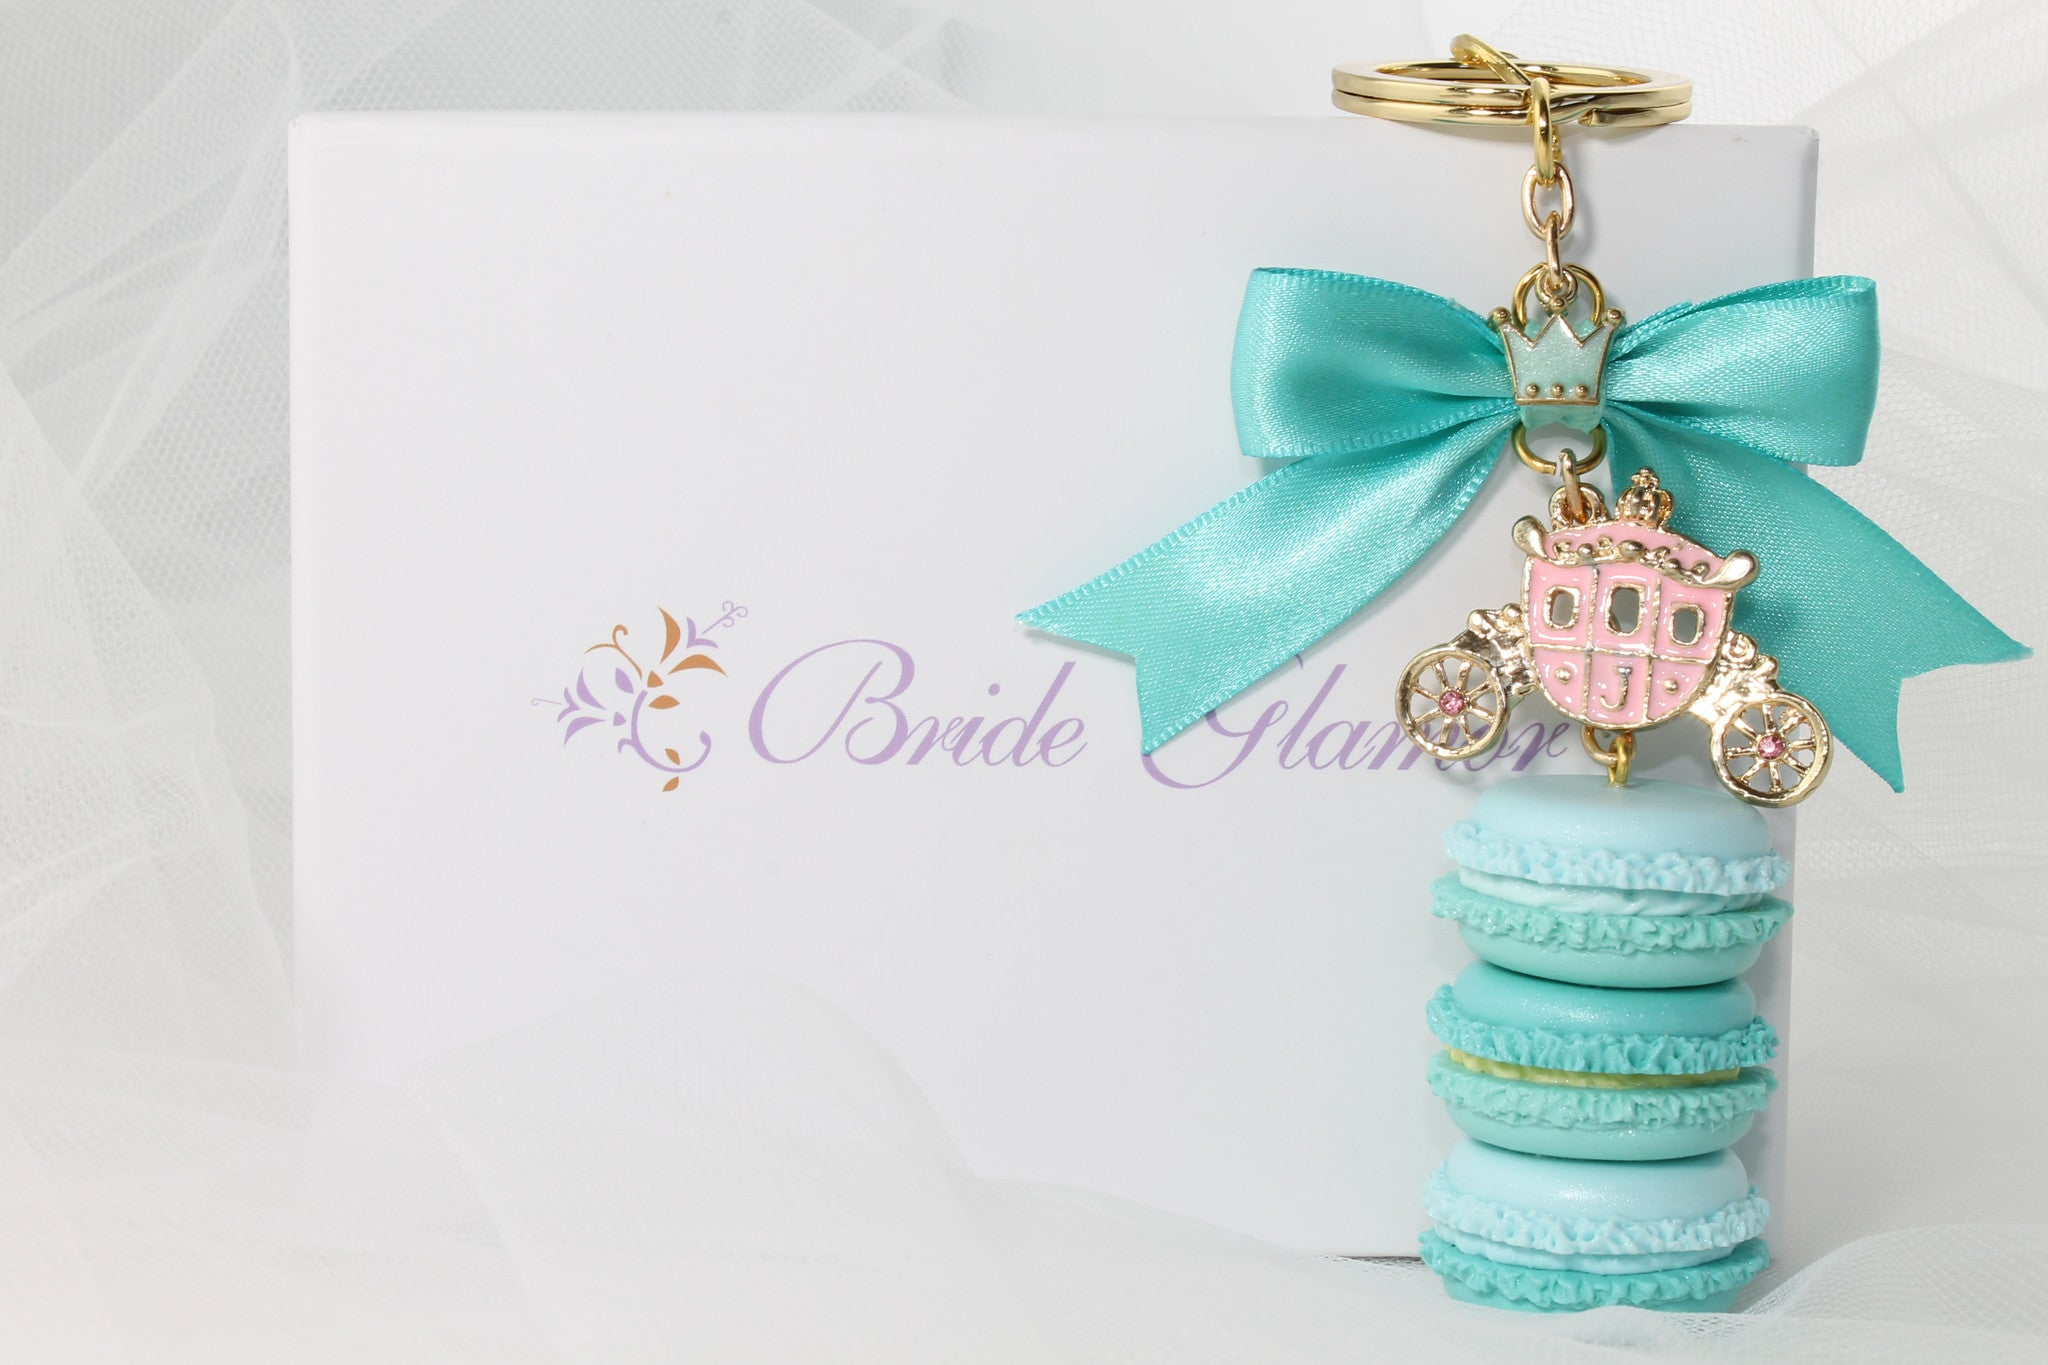 Wedding Party Gift/Favor French Macaroon Handmade - Bride Glamor